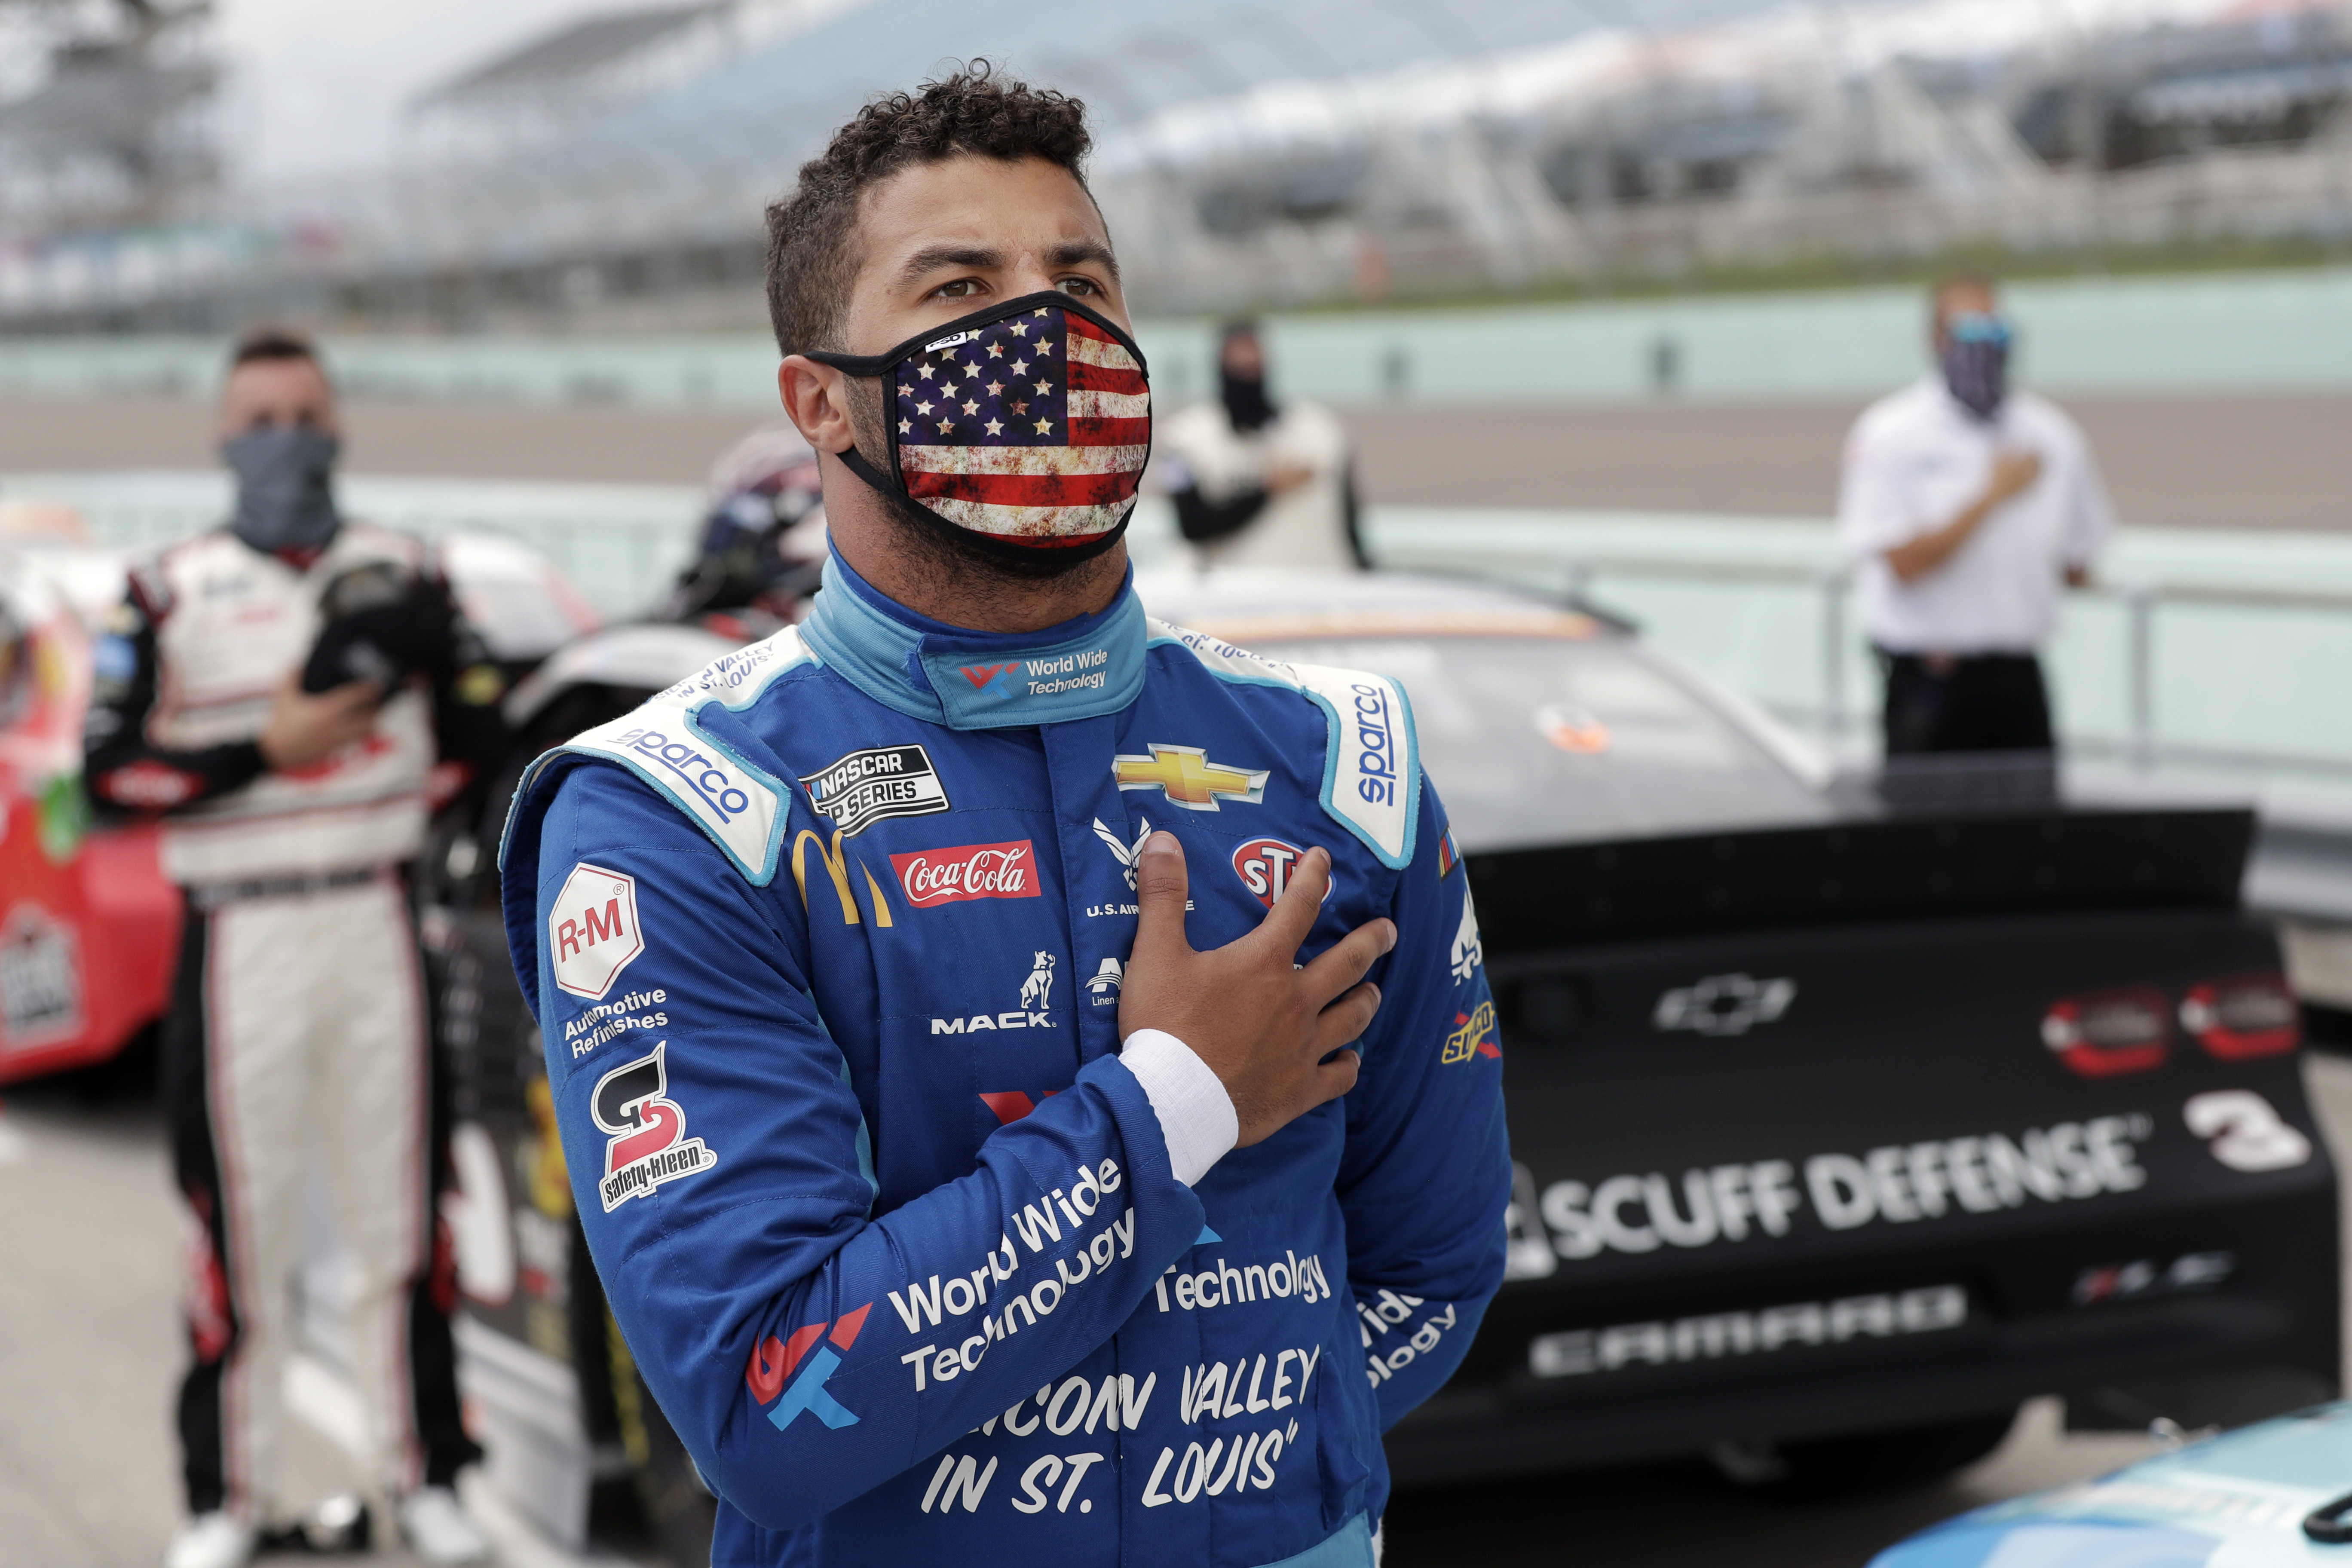 Bubba Wallace stands for the national anthem before a NASCAR Cup Series auto race on June 14, 2020, in Homestead, Fla.